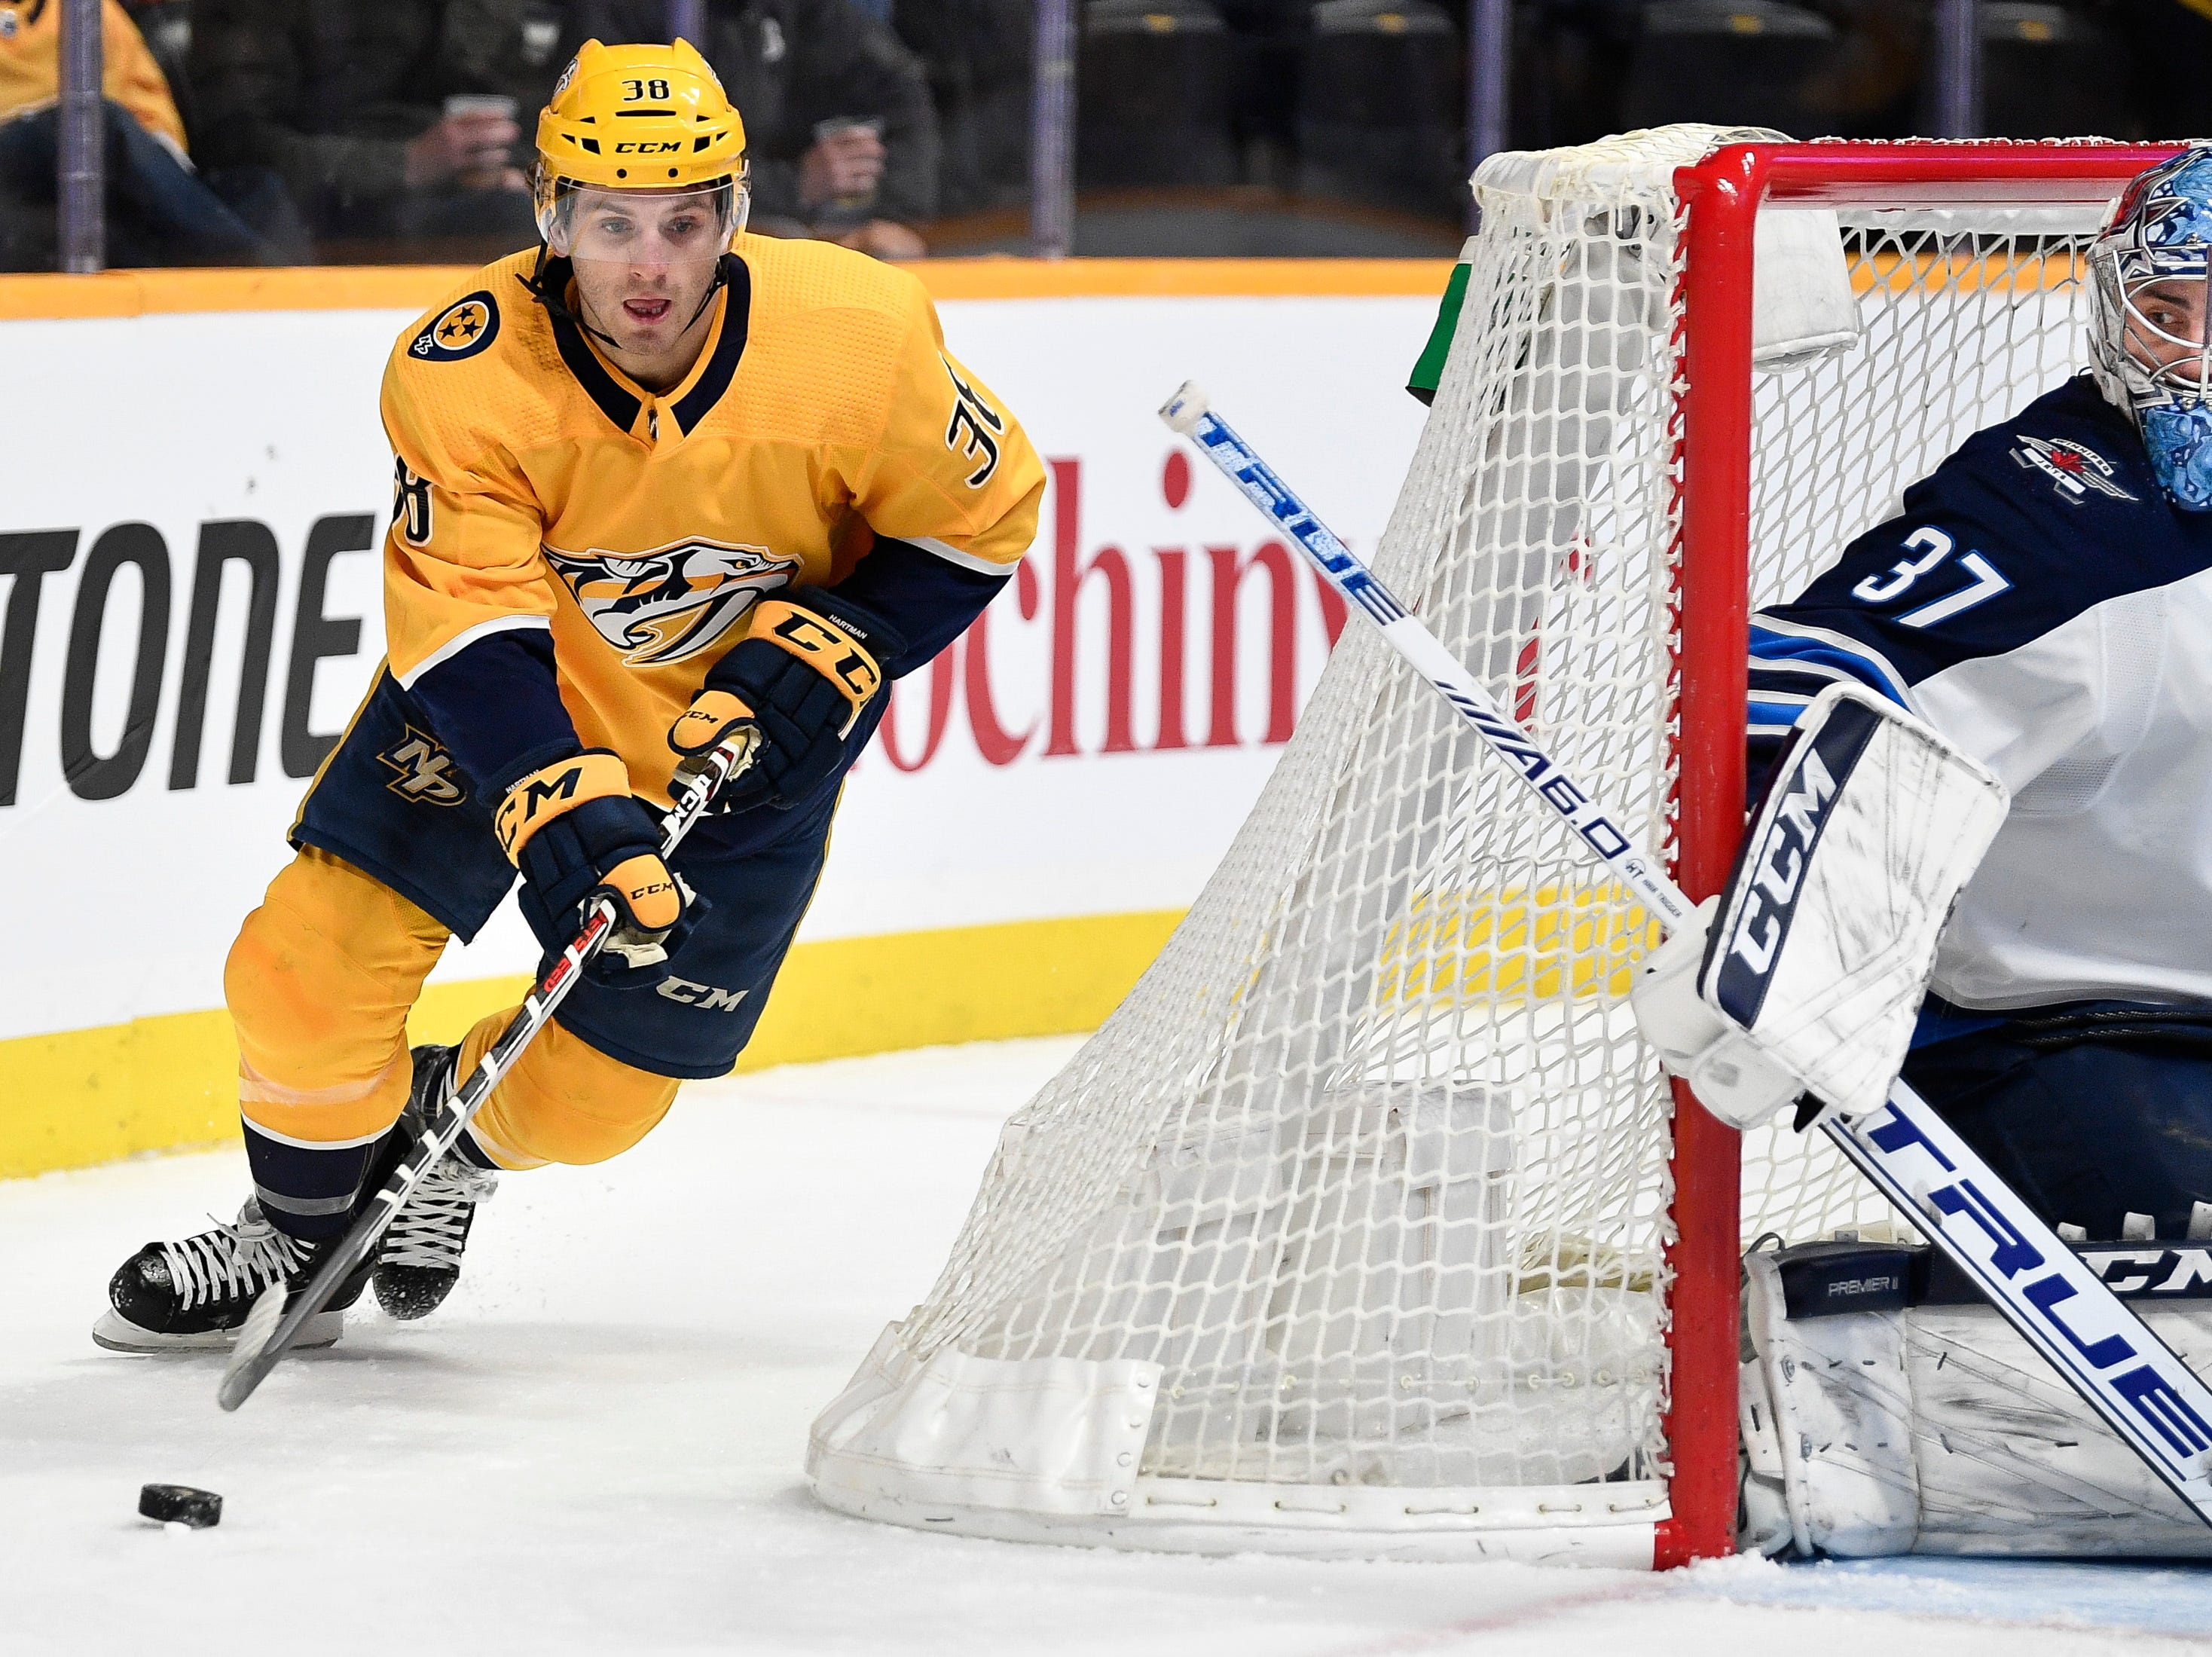 Nashville Predators right wing Ryan Hartman (38) maneuvers past Winnipeg Jets goaltender Connor Hellebuyck (37) during the first period at Bridgestone Arena in Nashville, Tenn., Thursday, Jan. 17, 2019.